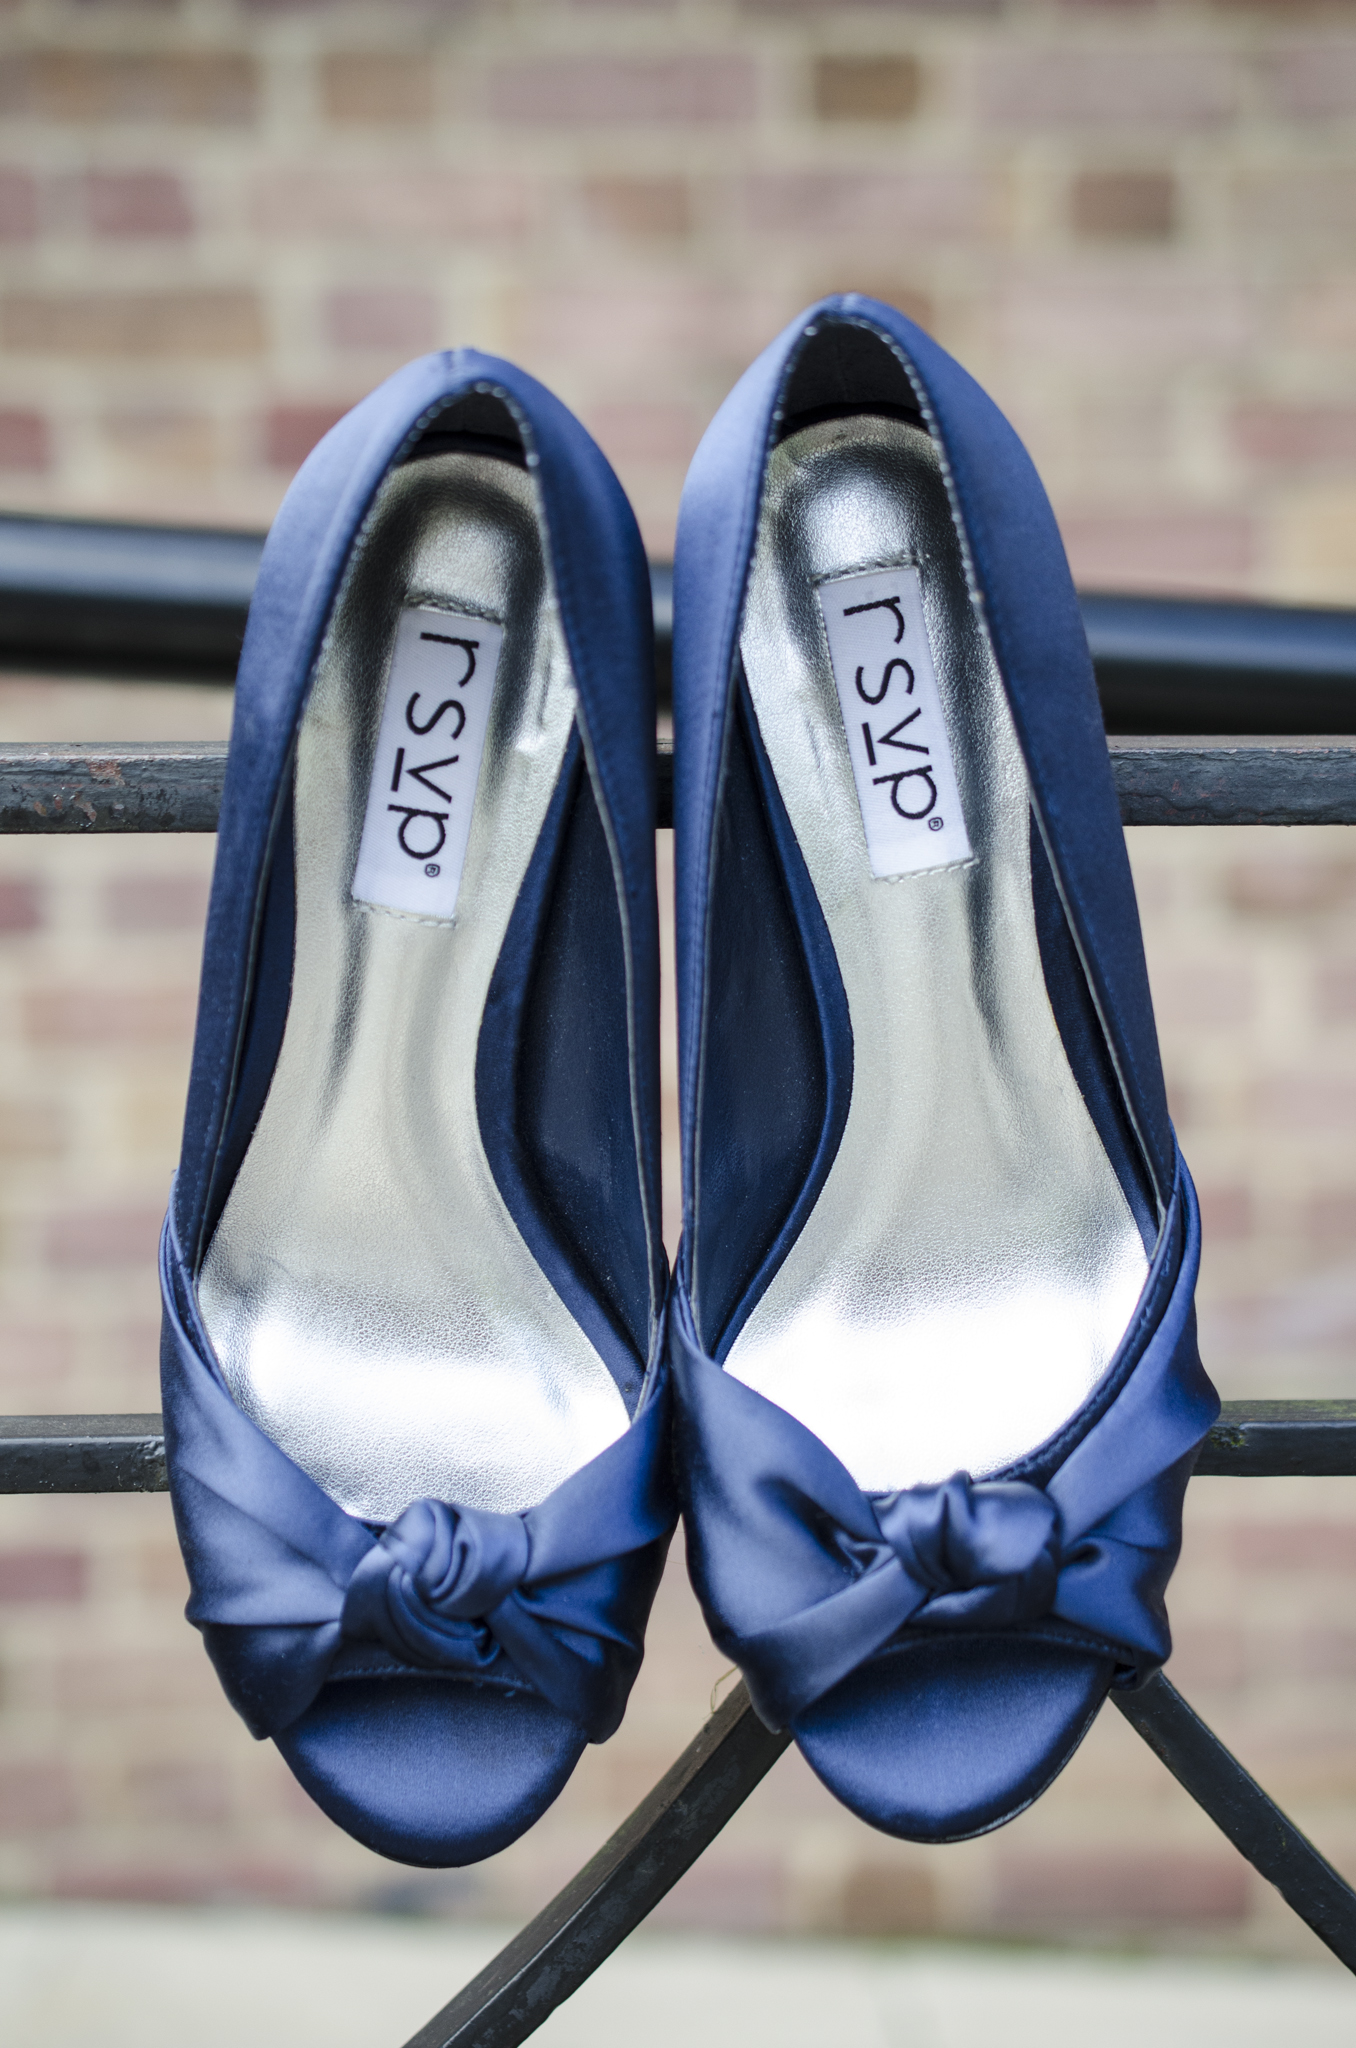 Blue wedding shoes in Baltimore, Maryland